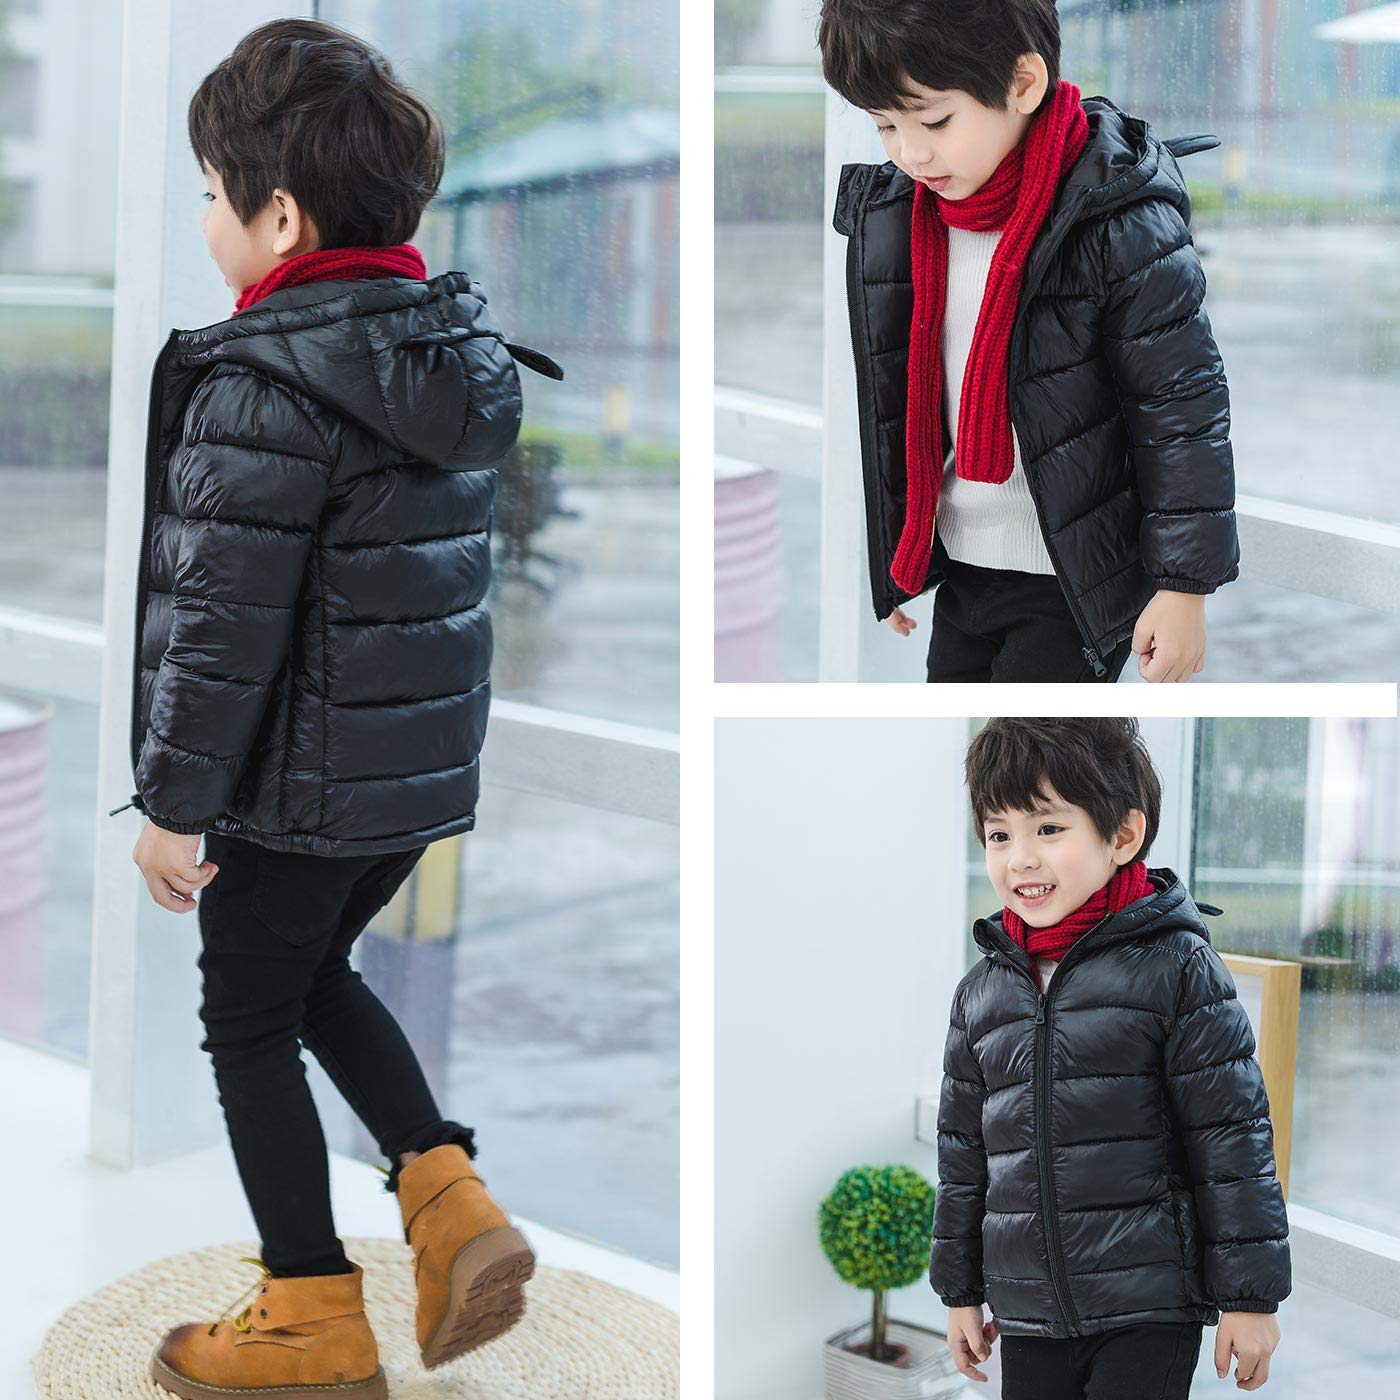 Infant Print Warm Jacket Zipper Cartoon Coat Windproof Unisex Outwear Cotton Pattern Outerwear Light Puffer Down Hoodie Winter Cute Clothes Black 5-6t